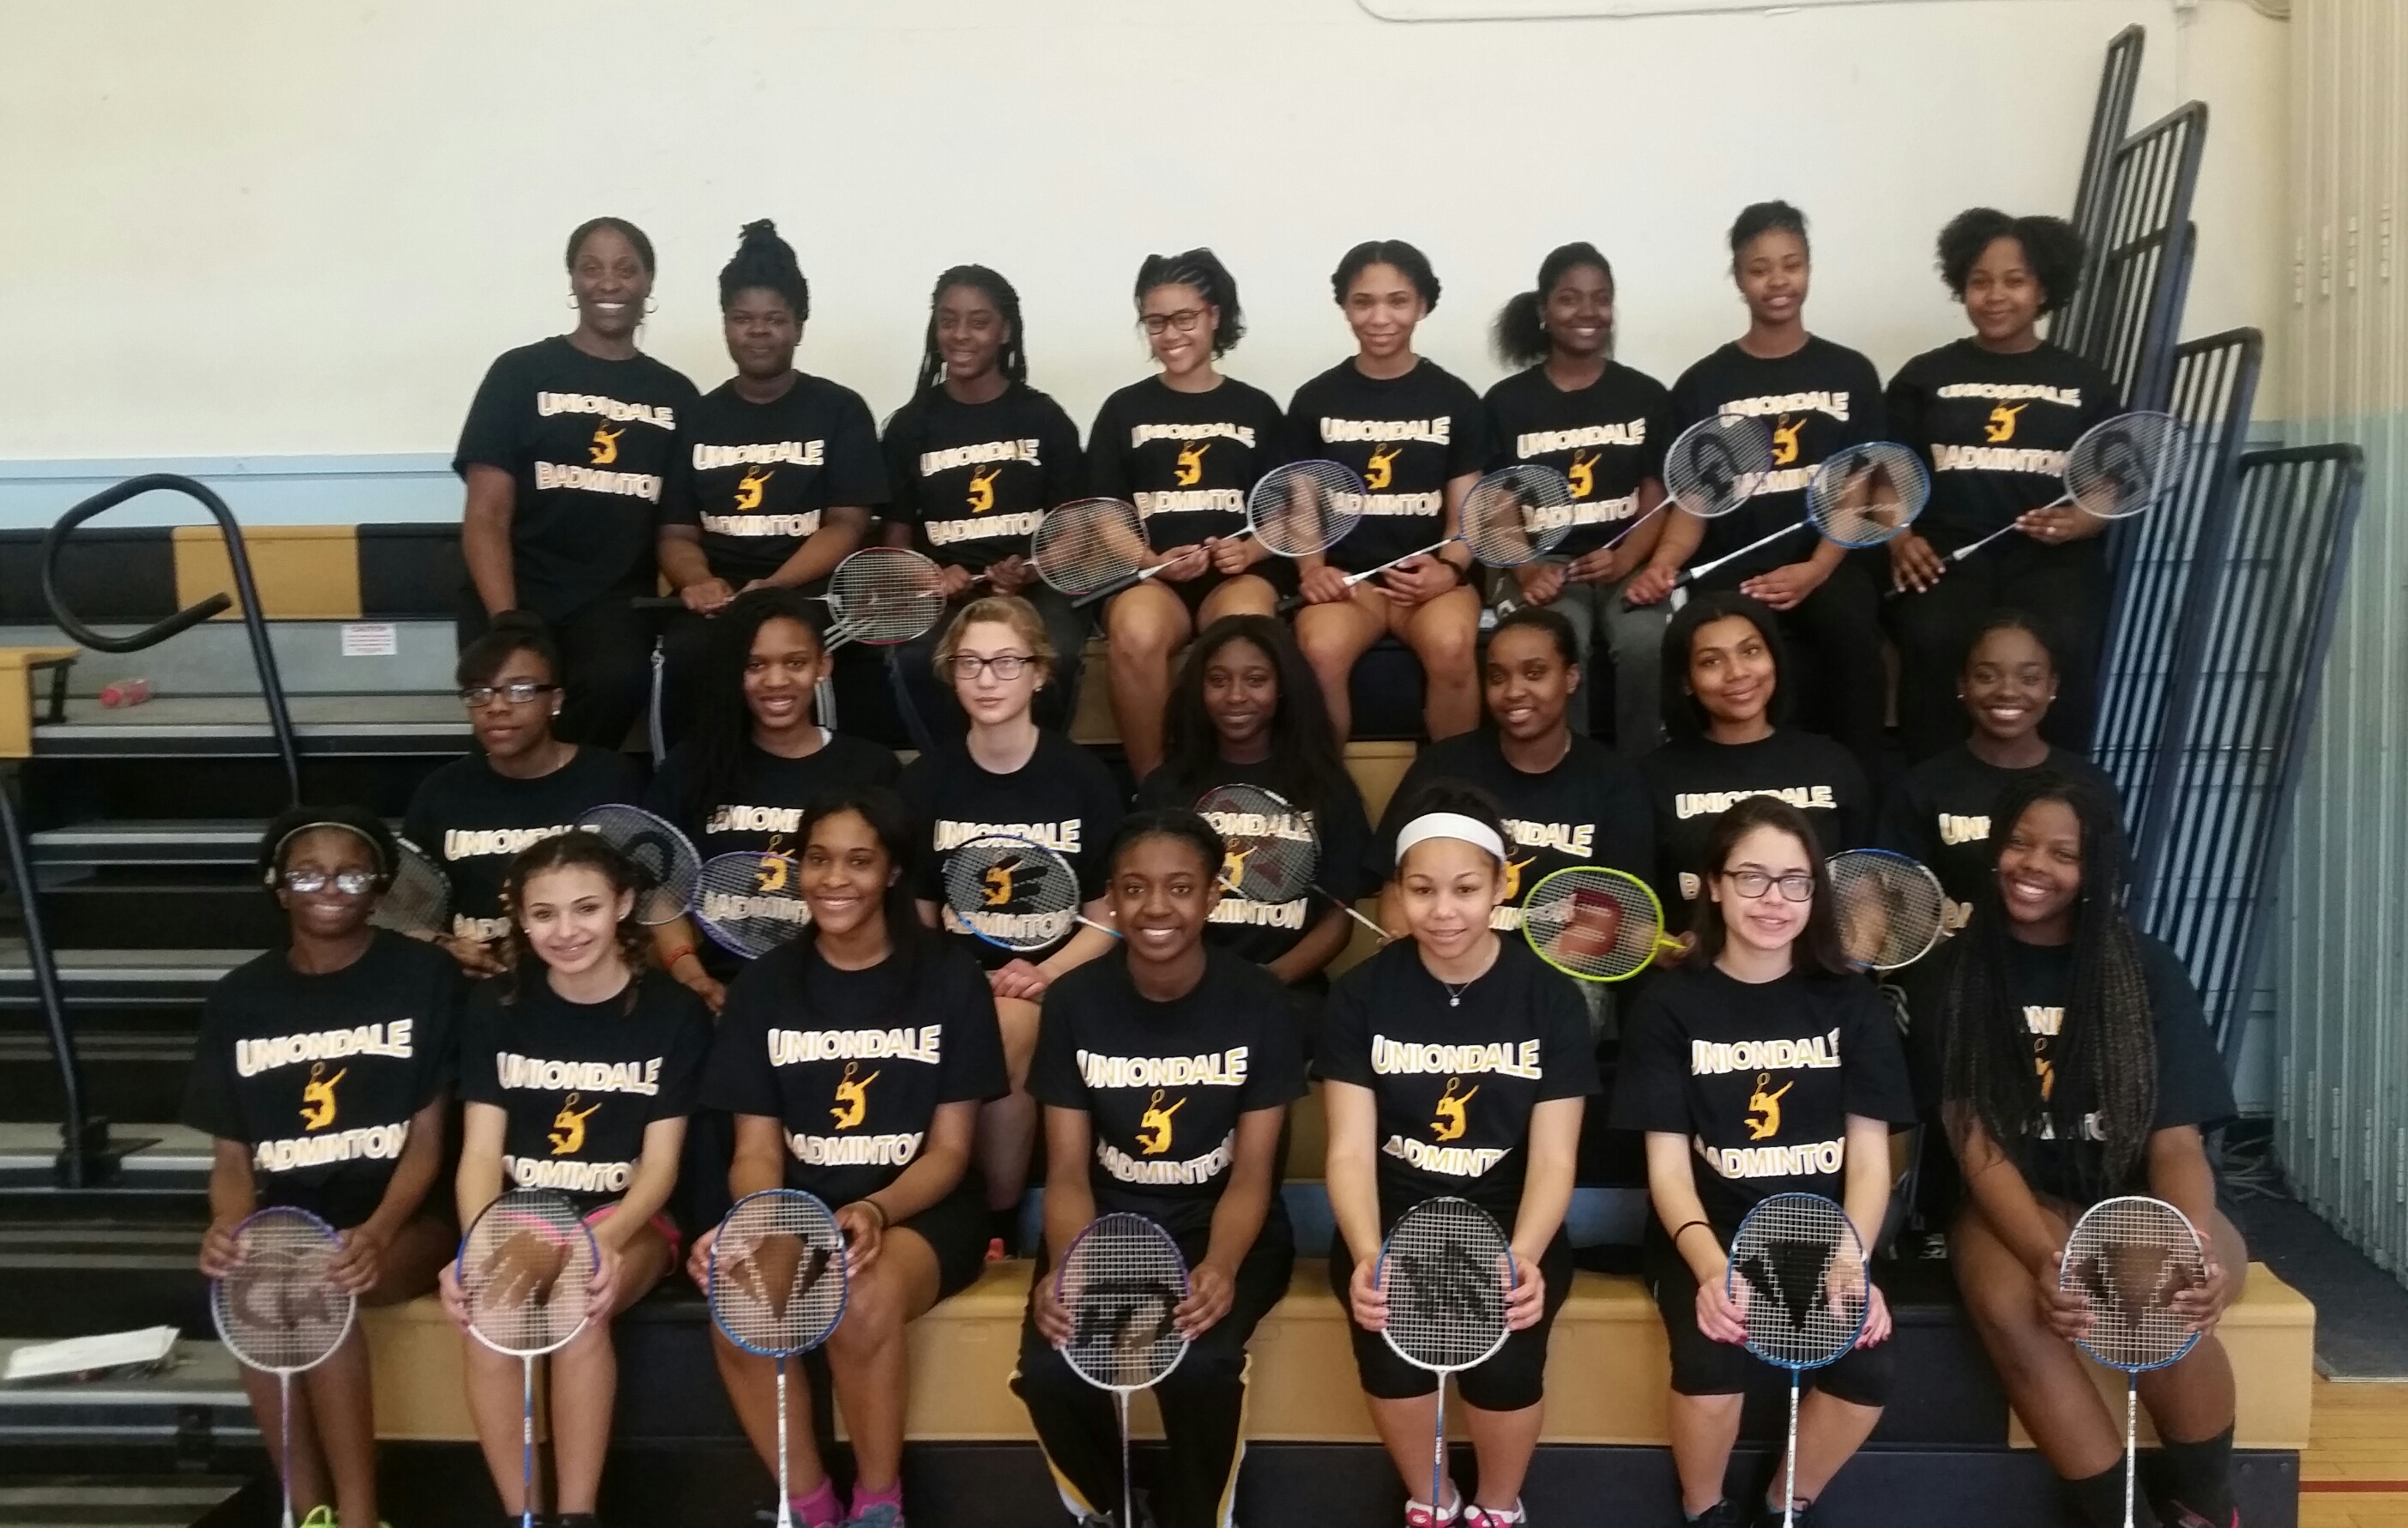 Design t shirt badminton - Uniondale High School Badminton Team T Shirt Photo